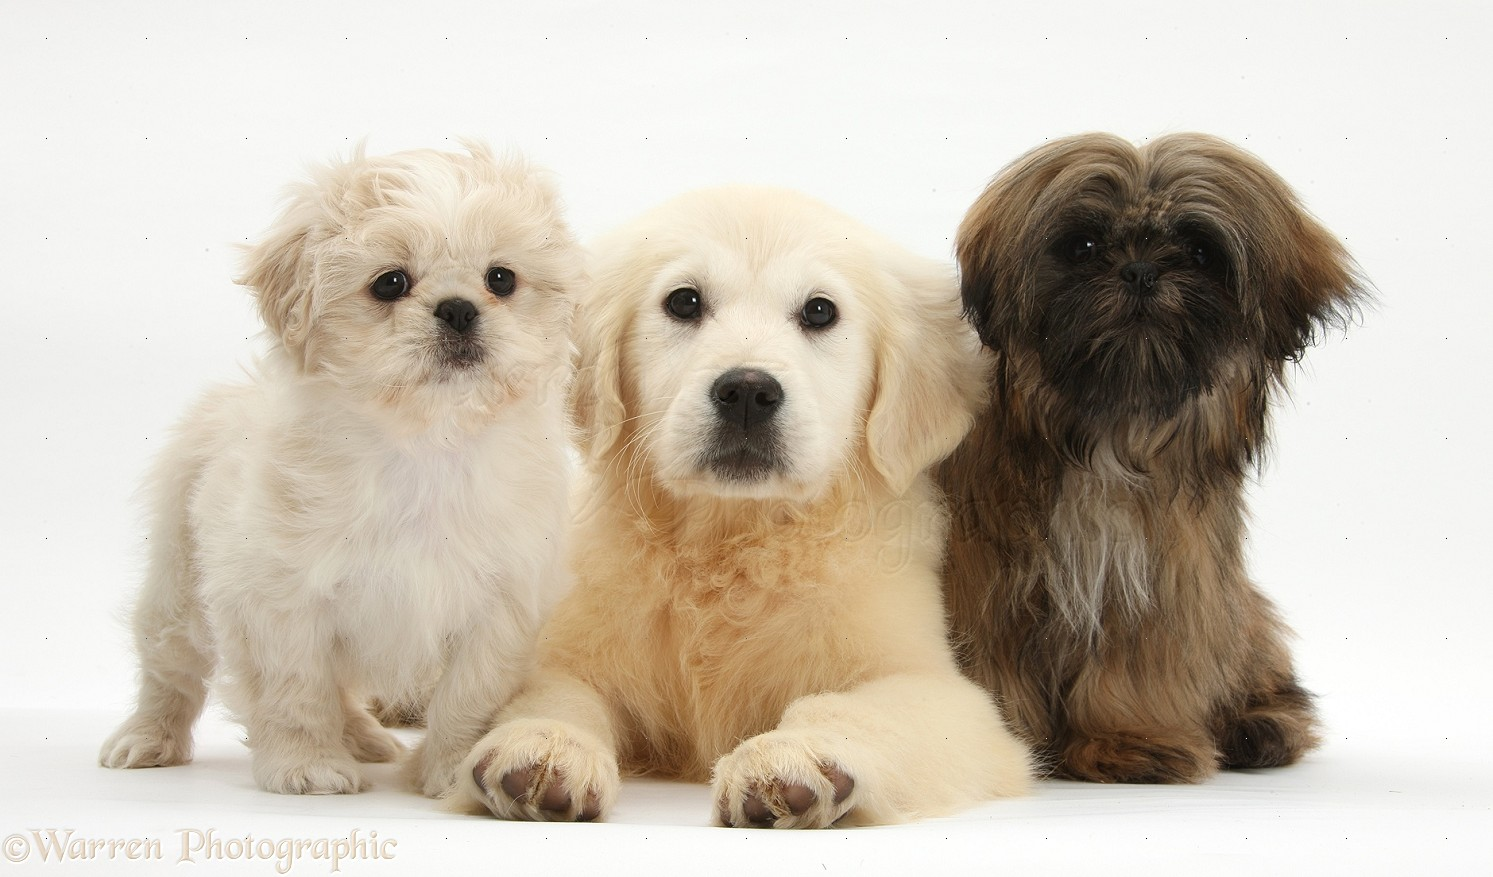 Dogs Golden Retriever Pup With Two Shih Tzus Photo Wp27702